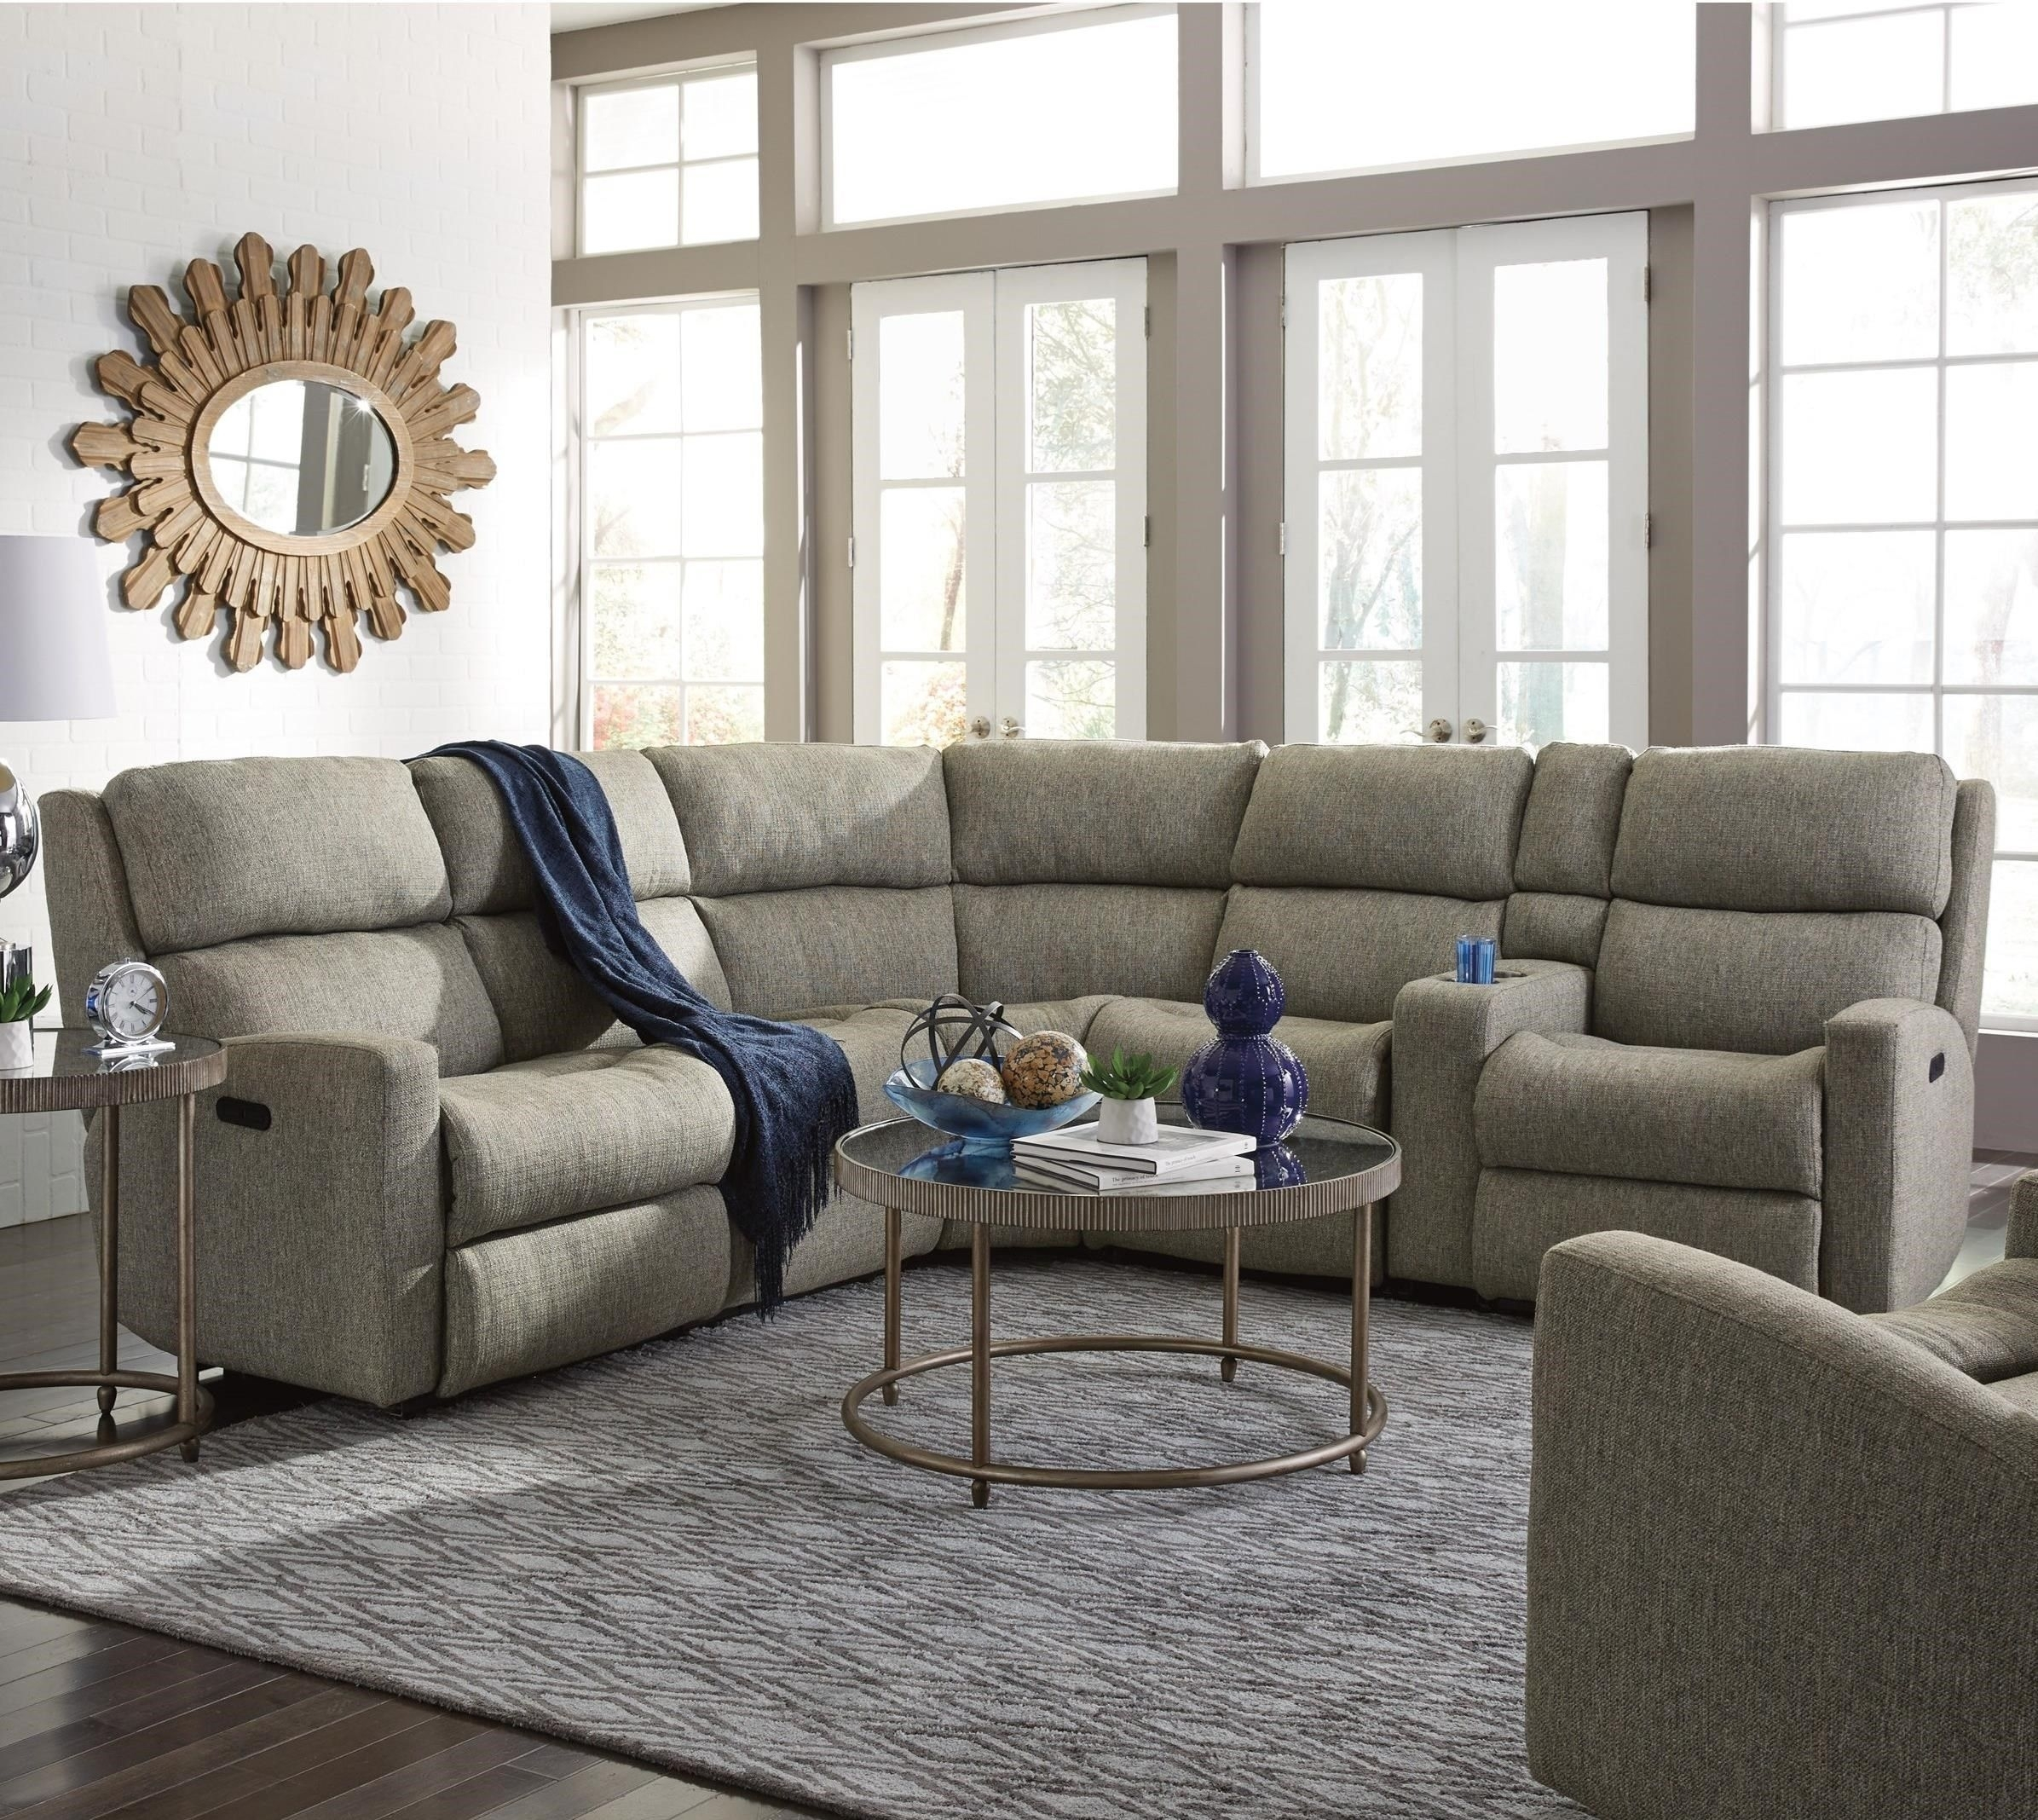 Catalina 6 Pc Reclining Sectional Sofaflexsteel | Fabulous Regarding Hawaii Sectional Sofas (Image 3 of 10)